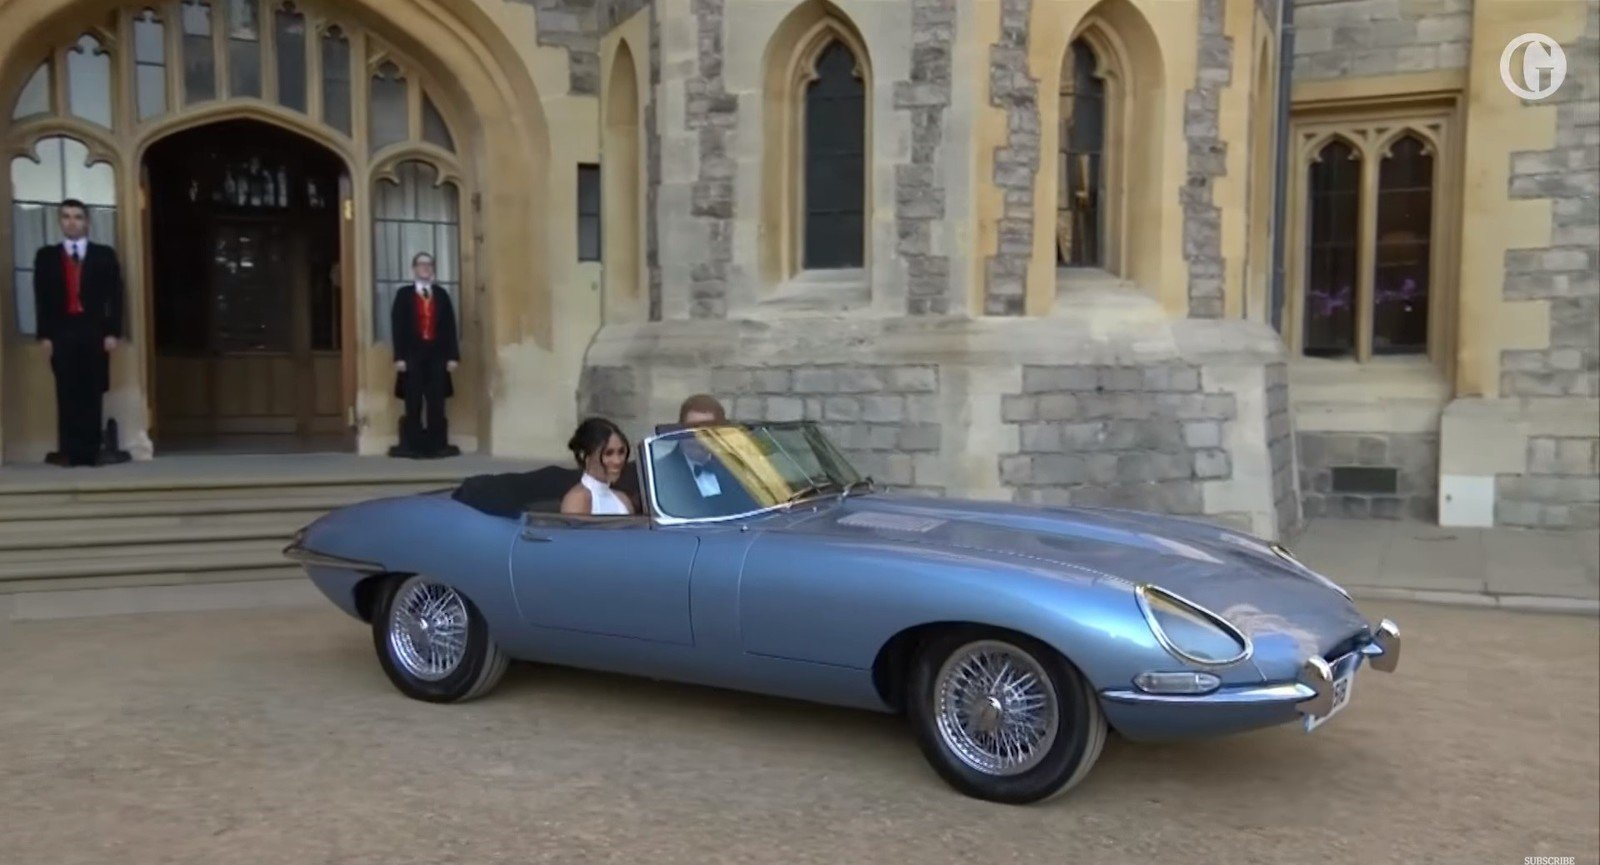 Jaguar F Type Convertible >> Prince Harry And Meghan Markle Leave The Royal Wedding In ...